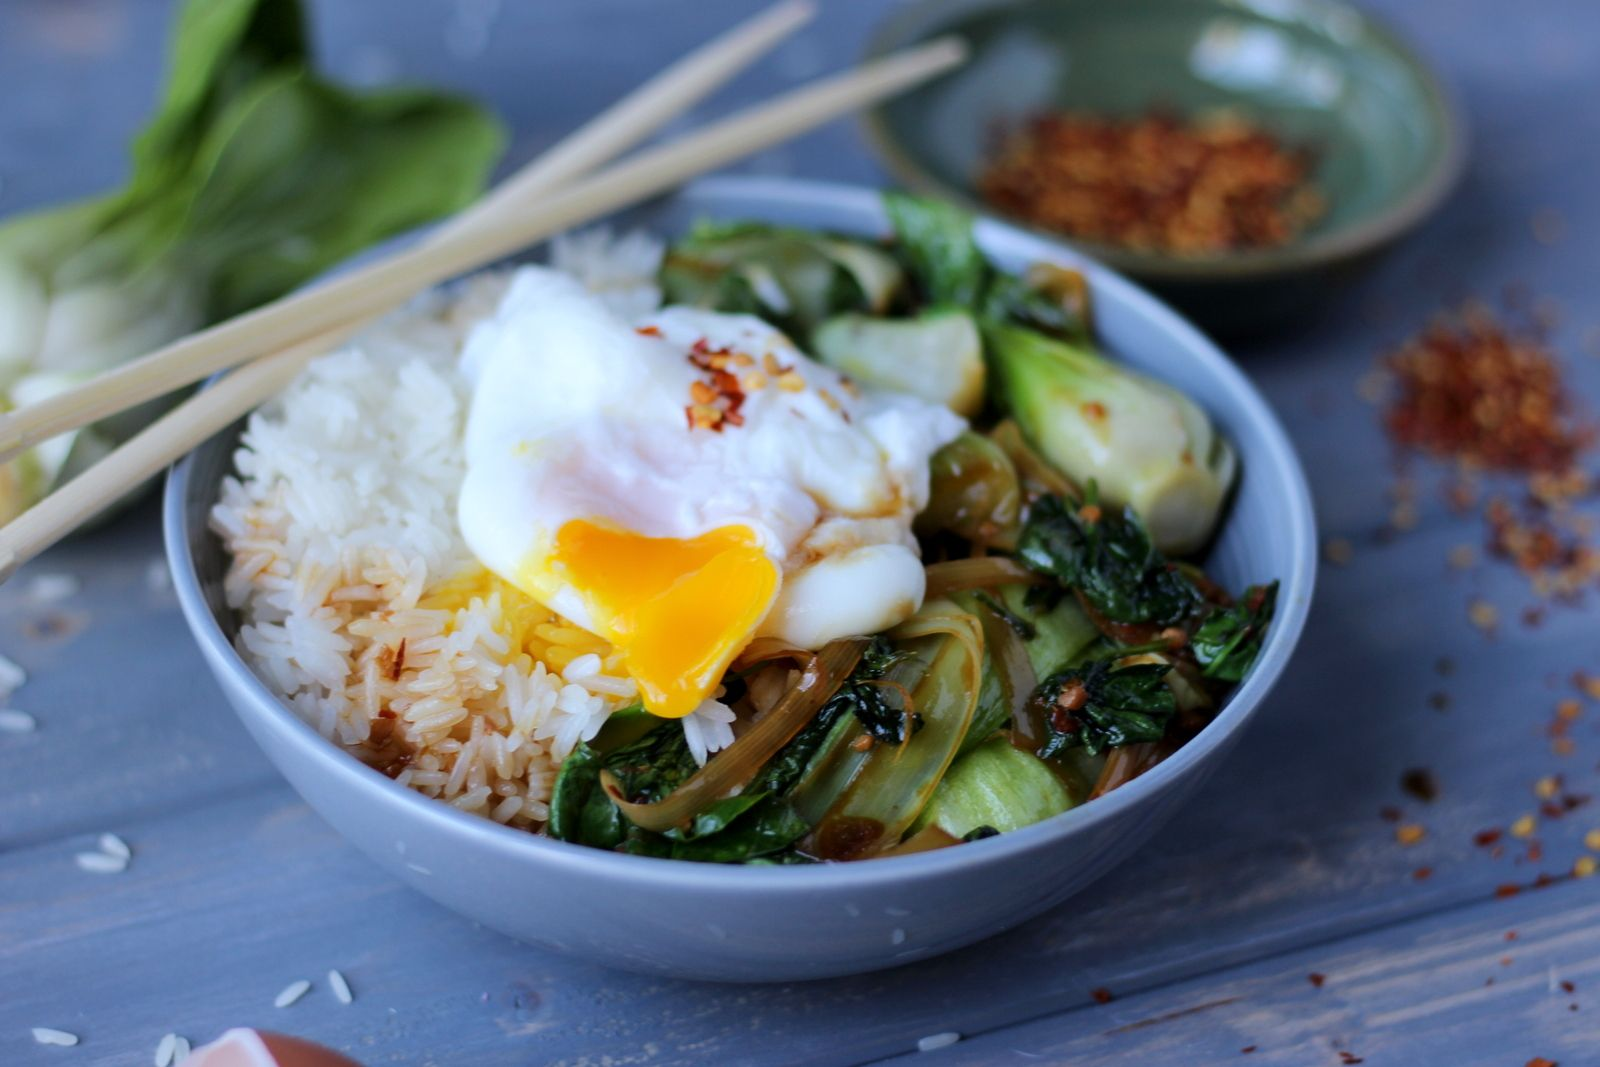 Braised Bok Choy, Leek and Spinach Rice Bowl with Poached Egg Vegetarian Rice Bowl with Bok Choy, Leeks, Spinach and Poached Egg - comes together so easily and is absolutely delicious!!